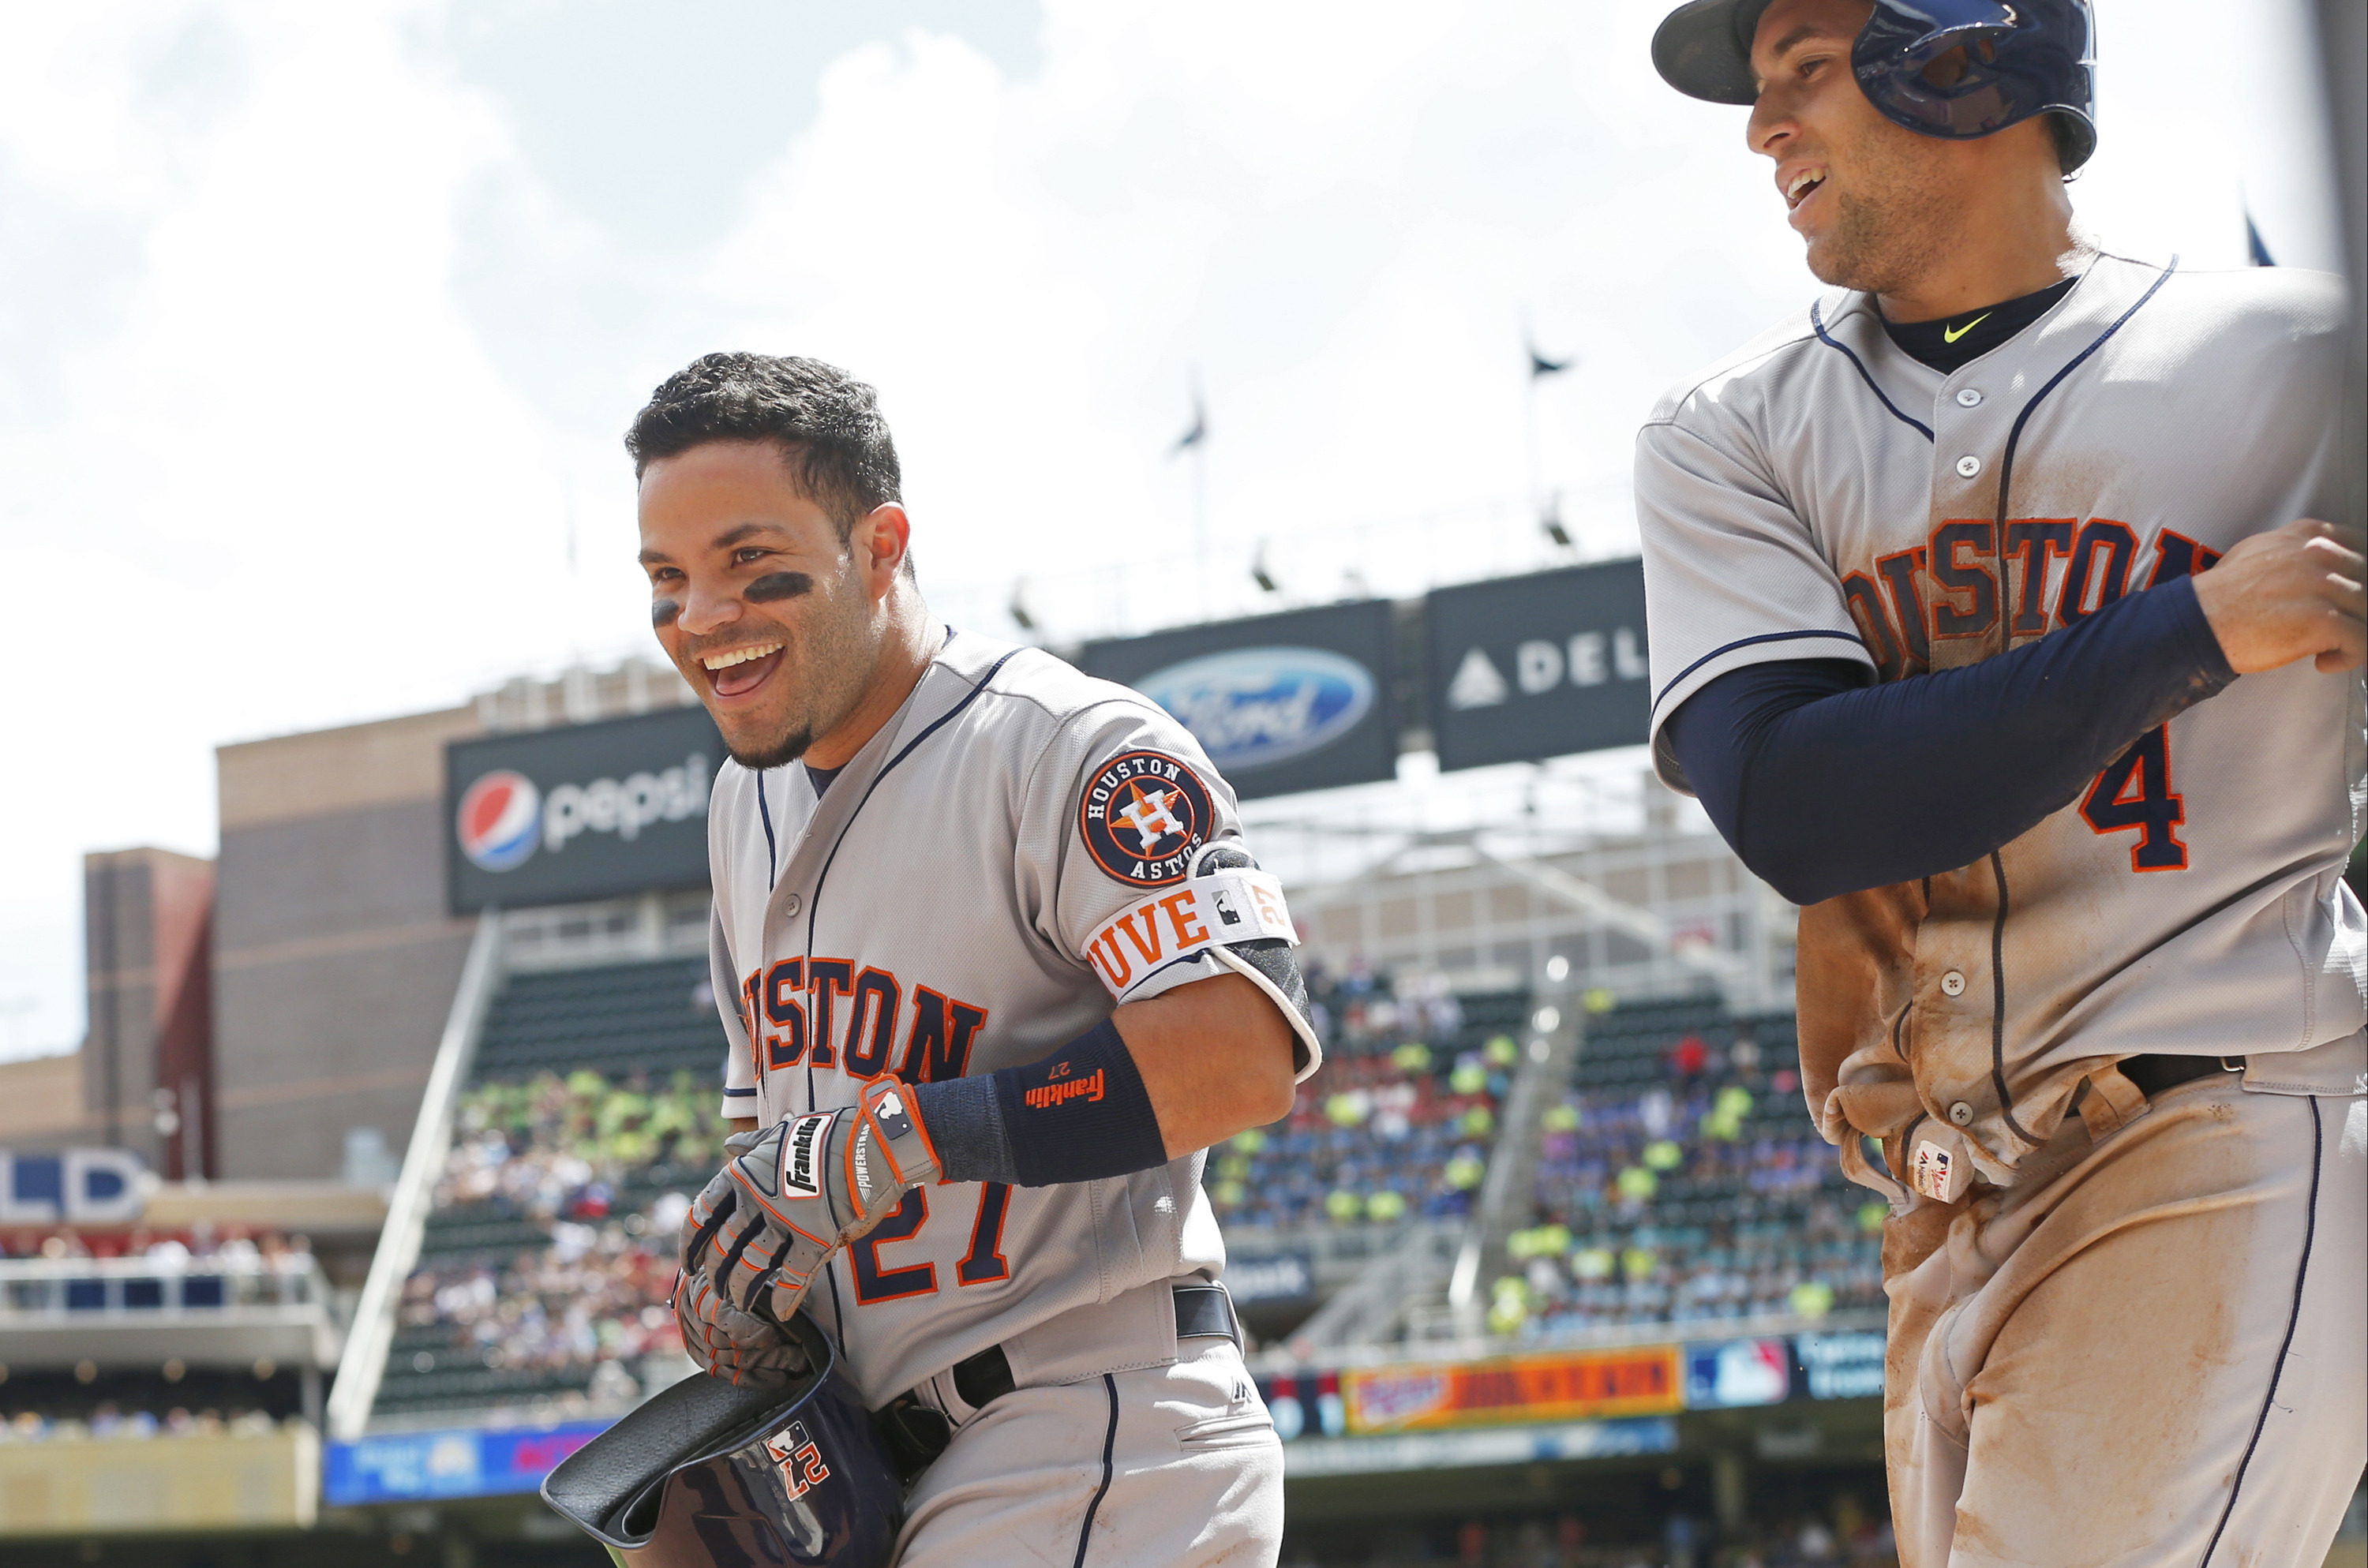 Houston Astros' Jose Altuve, left, and George Springer head to the dugout after scoring in the first inning of a baseball game against the Minnesota Twins Thursday, Aug. 11, 2016 in Minneapolis. (AP Photo/Jim Mone)